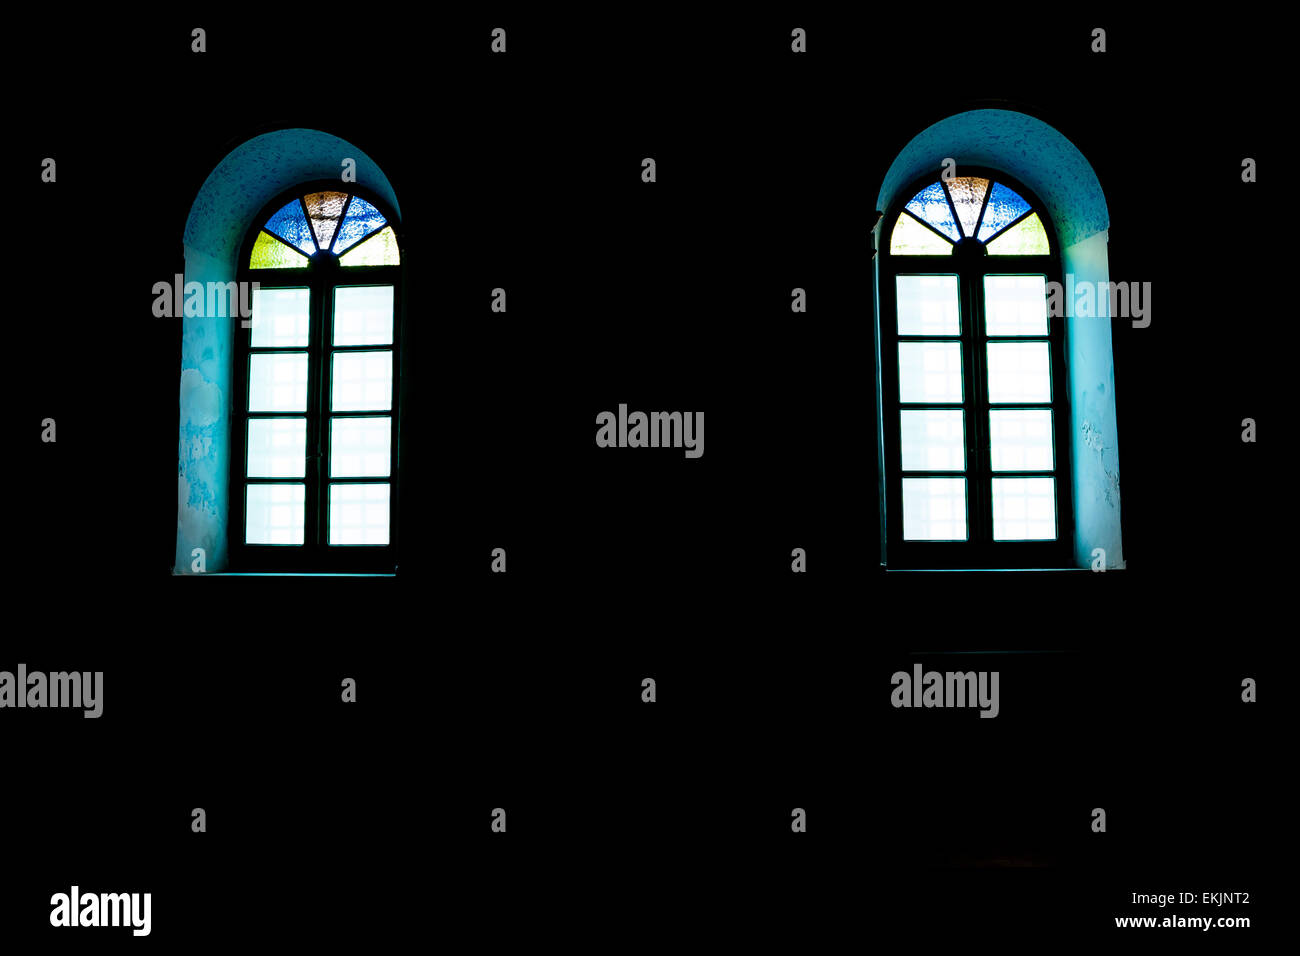 windows in the dark with colored glasses. - Stock Image